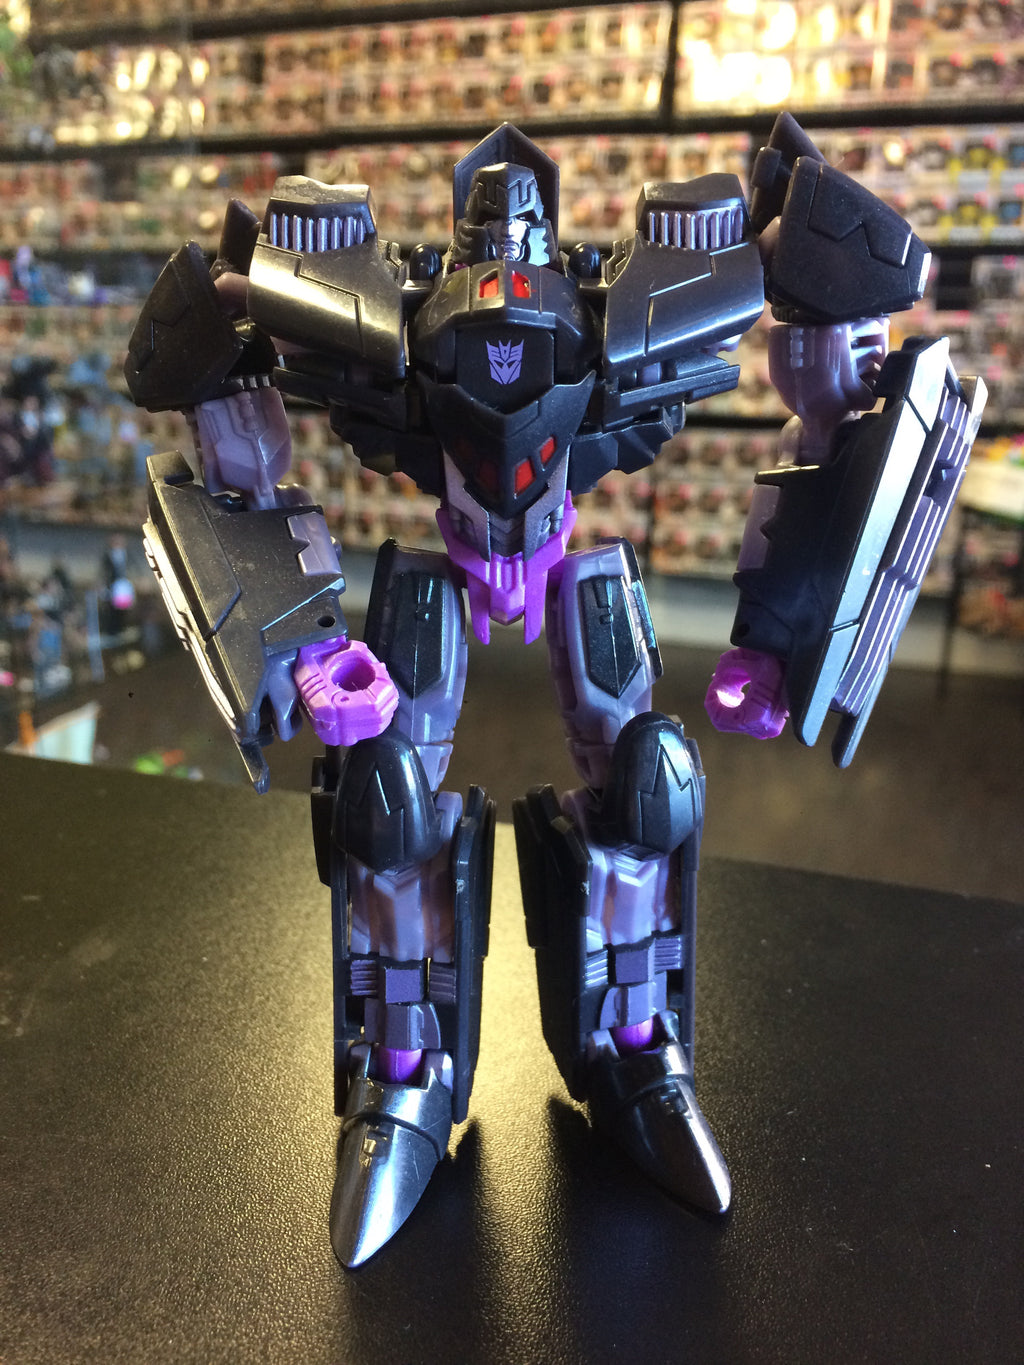 Hasbro Transformers Generations deluxe Megatron